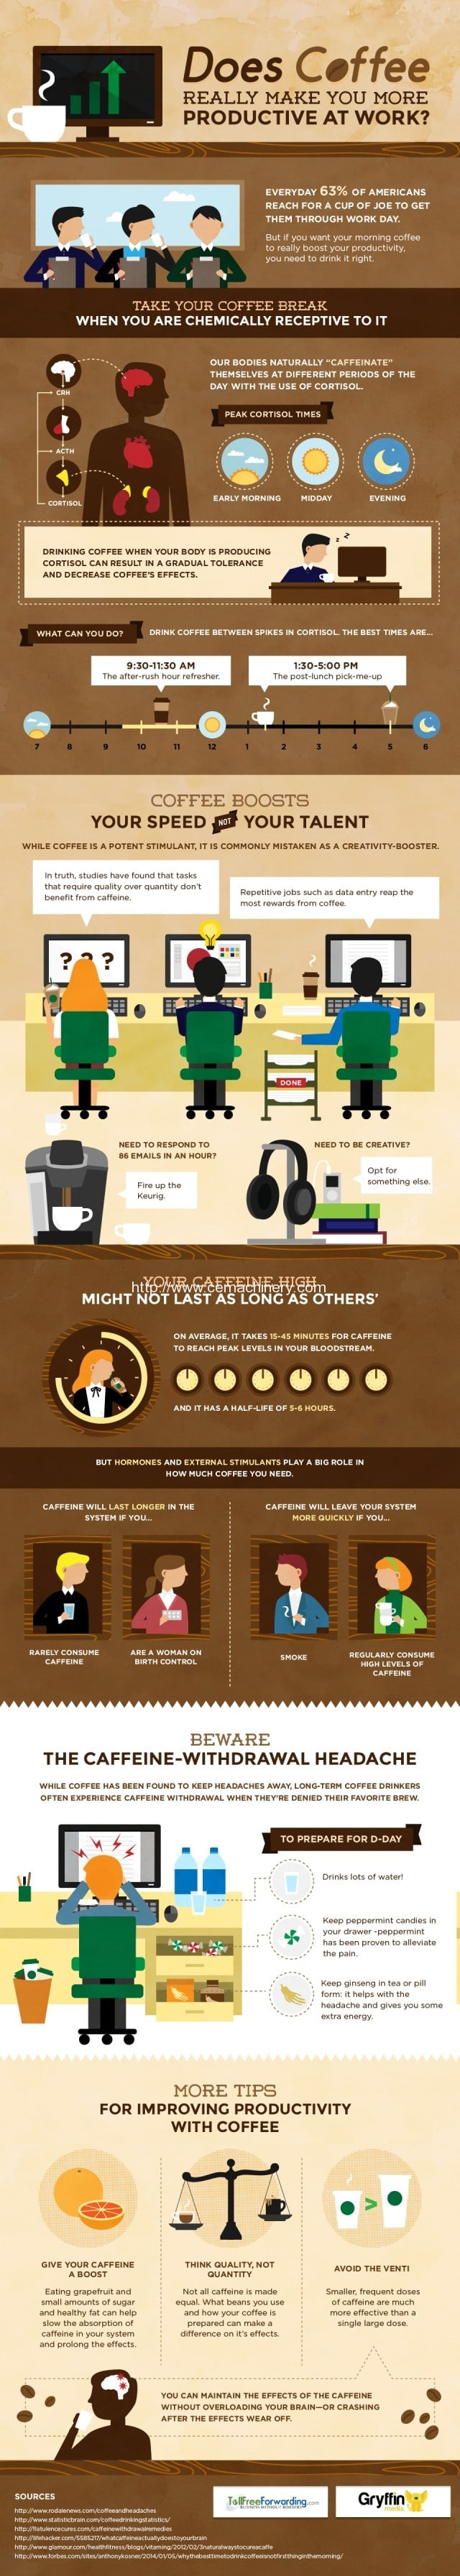 Does coffee really make you more productive at work 2